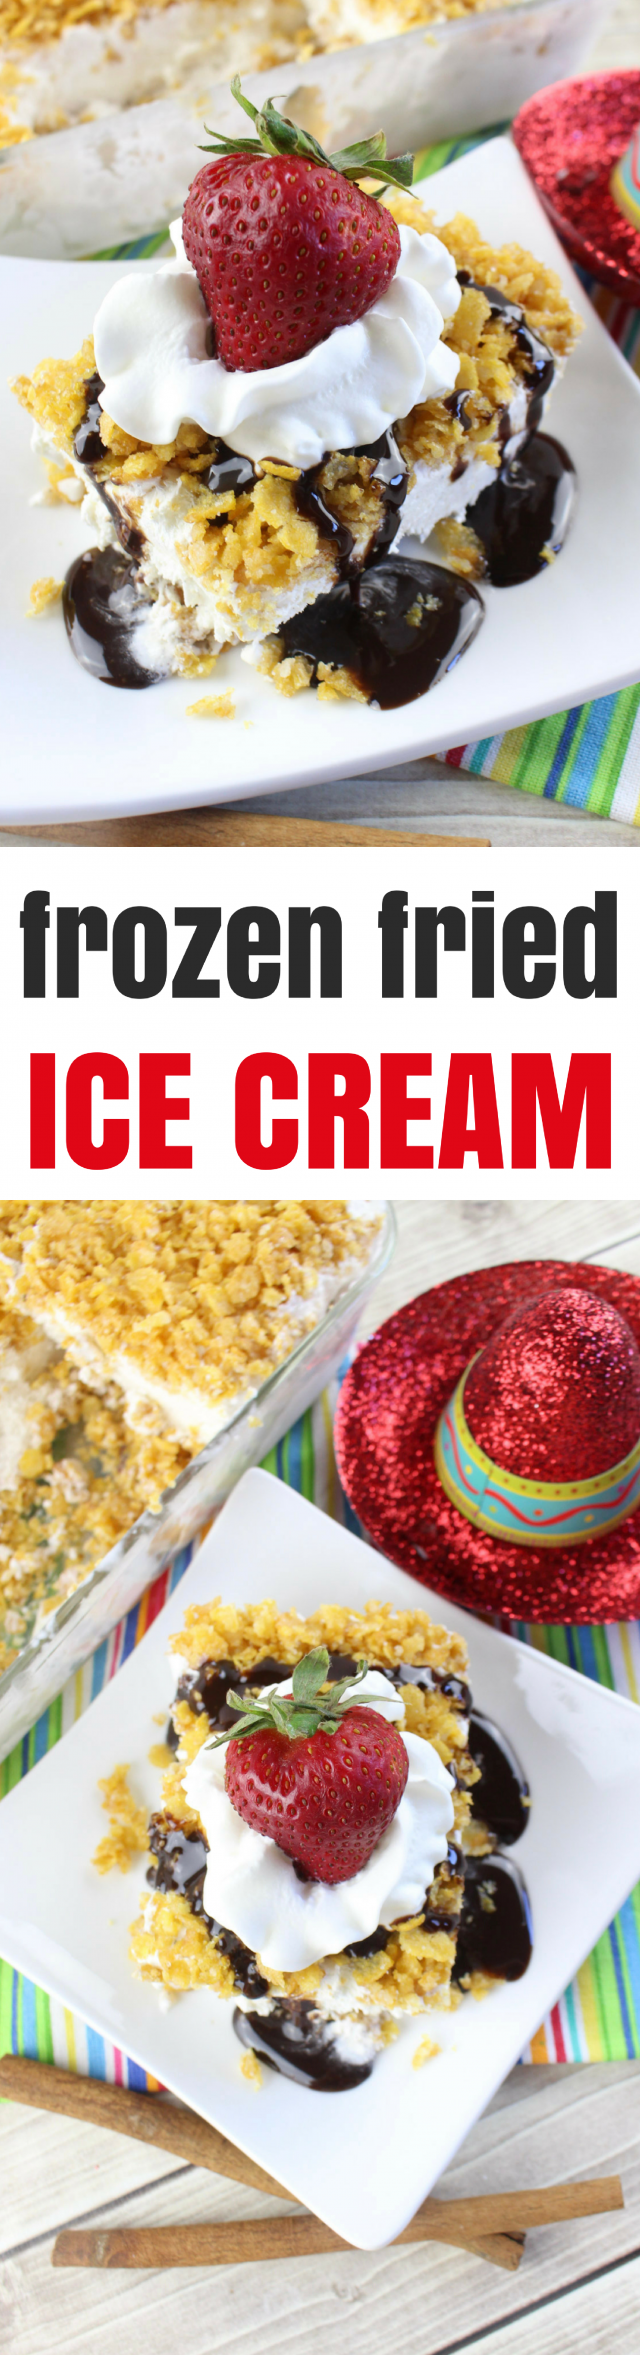 Frozen Fried Ice Cream Cornflake Dessert Recipe It's Cinco de Mayo (the 5th of May) and I want to eat ALL OF THE FOOD. Like today's recipe for Frozen Fried Ice Cream Dessert that includes cornflake cereal and chocolate sauce. YES PLEASE.